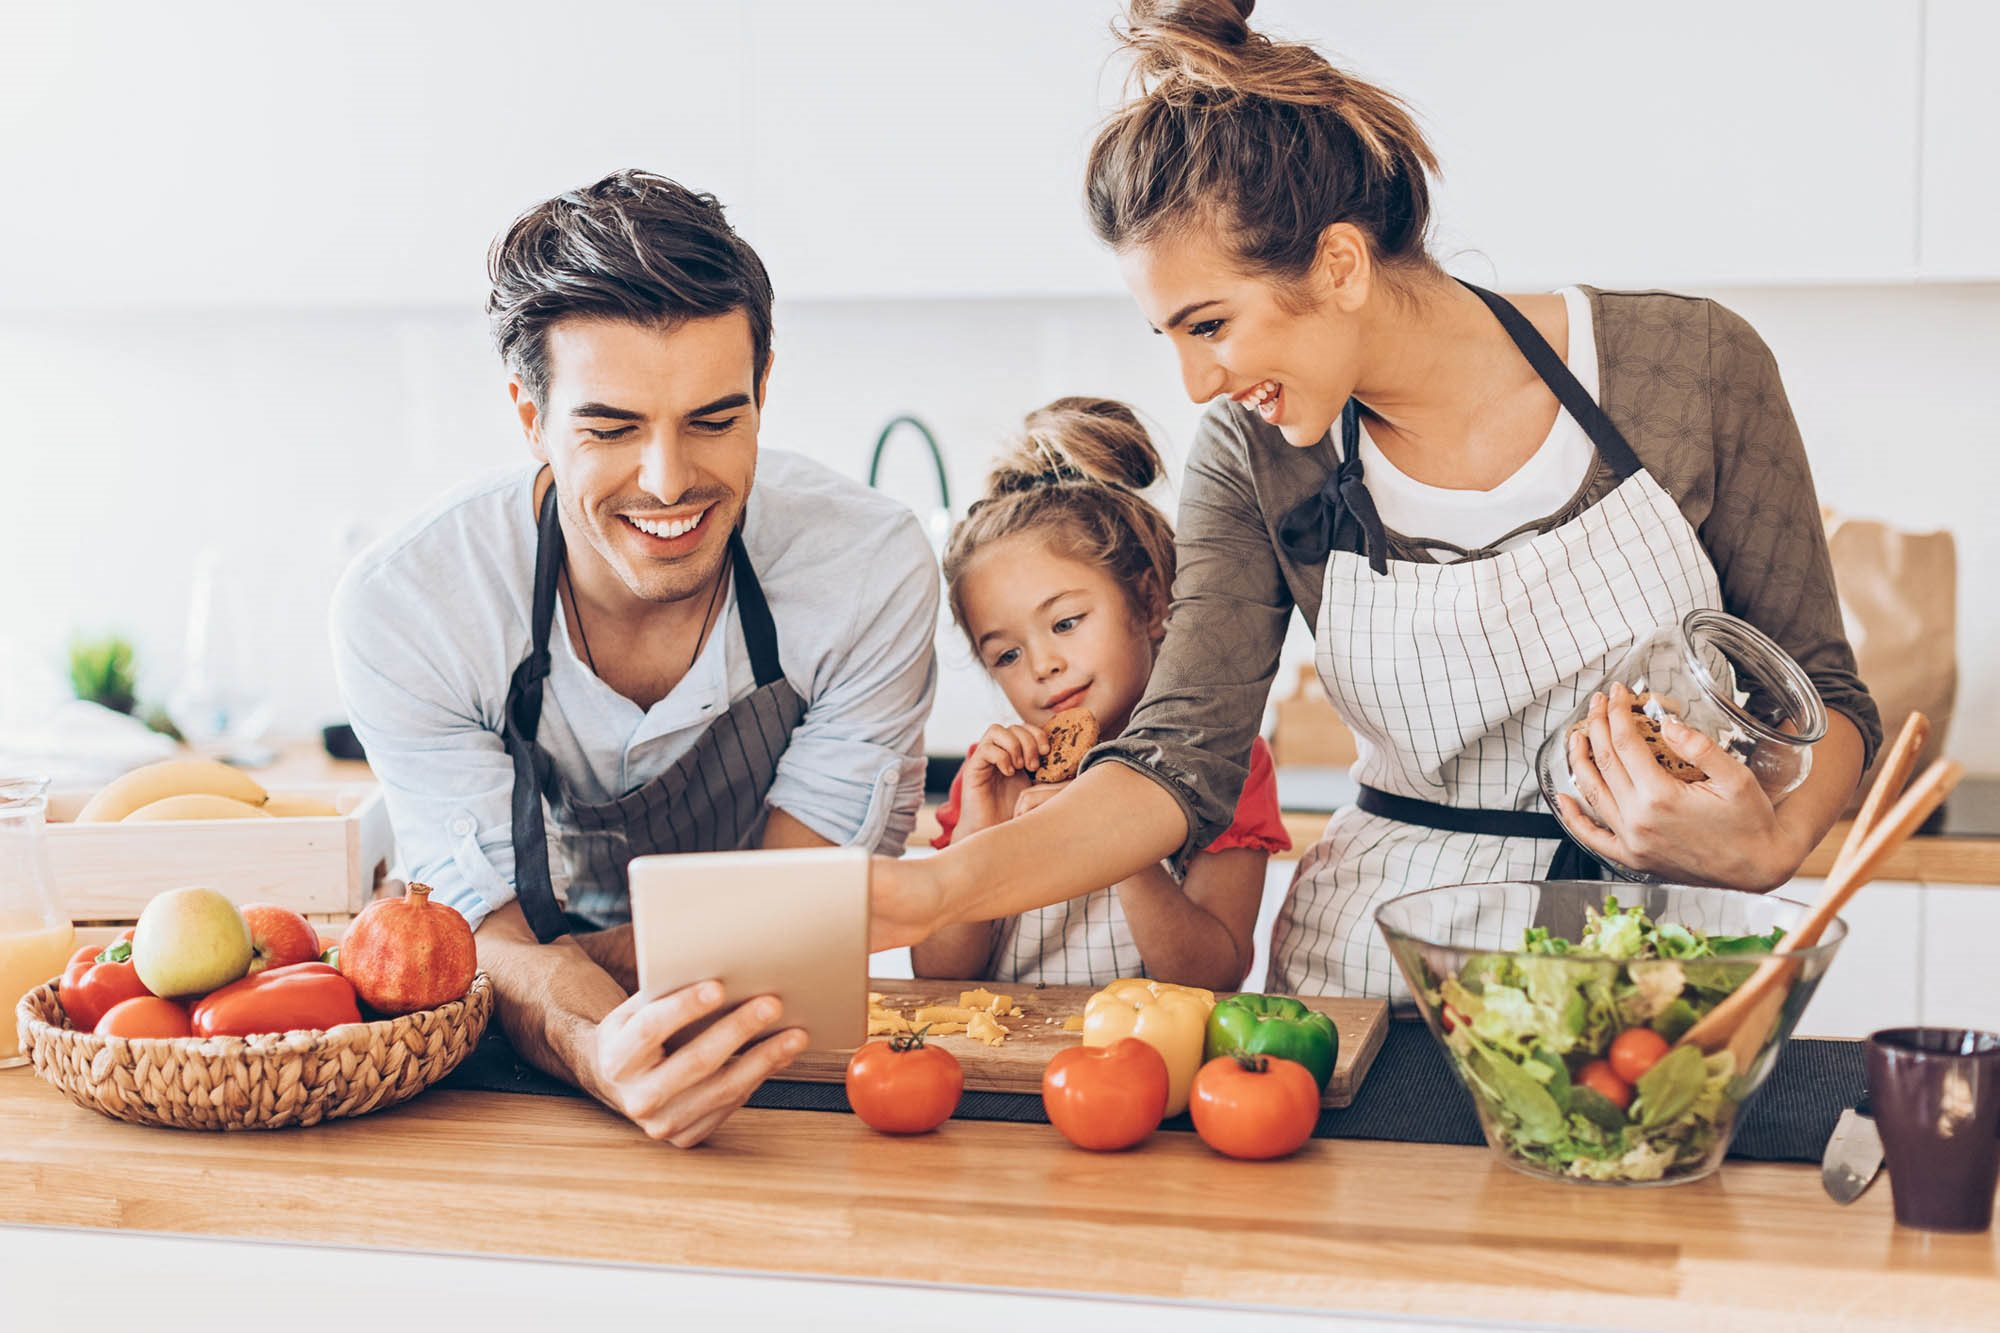 stock image- Family cooking